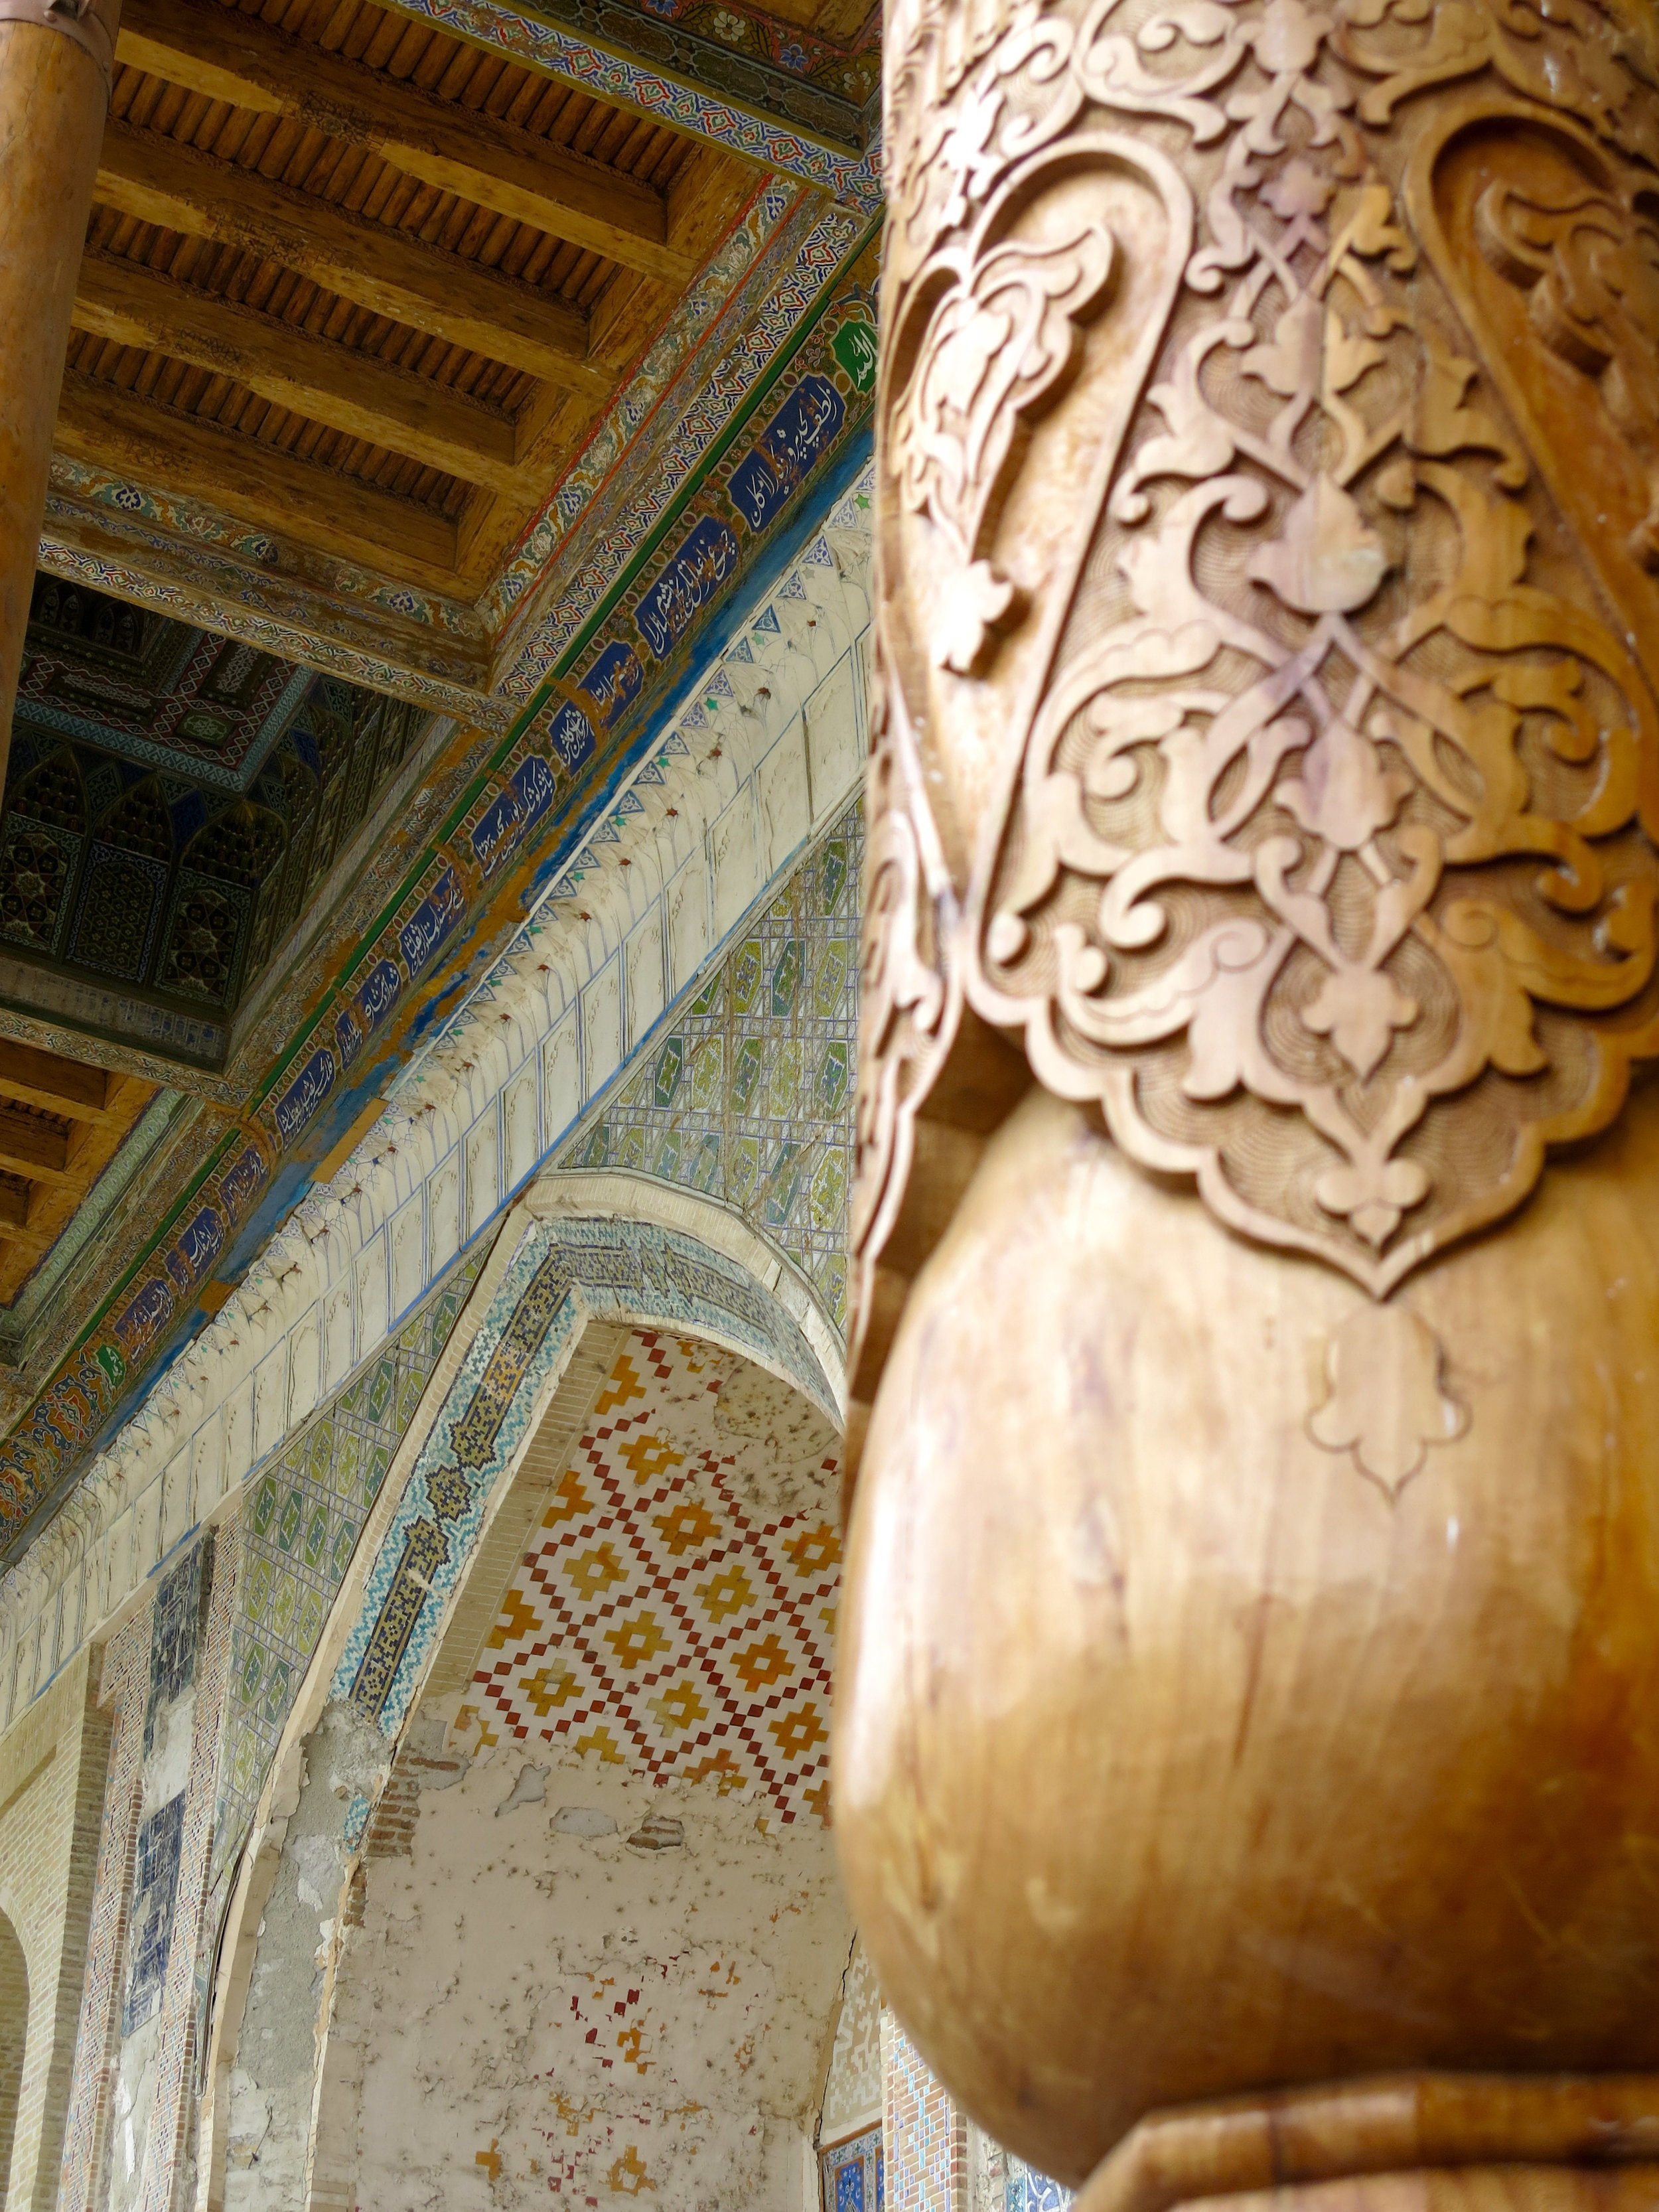 Fantastic carvings at the base of the wooden pillars